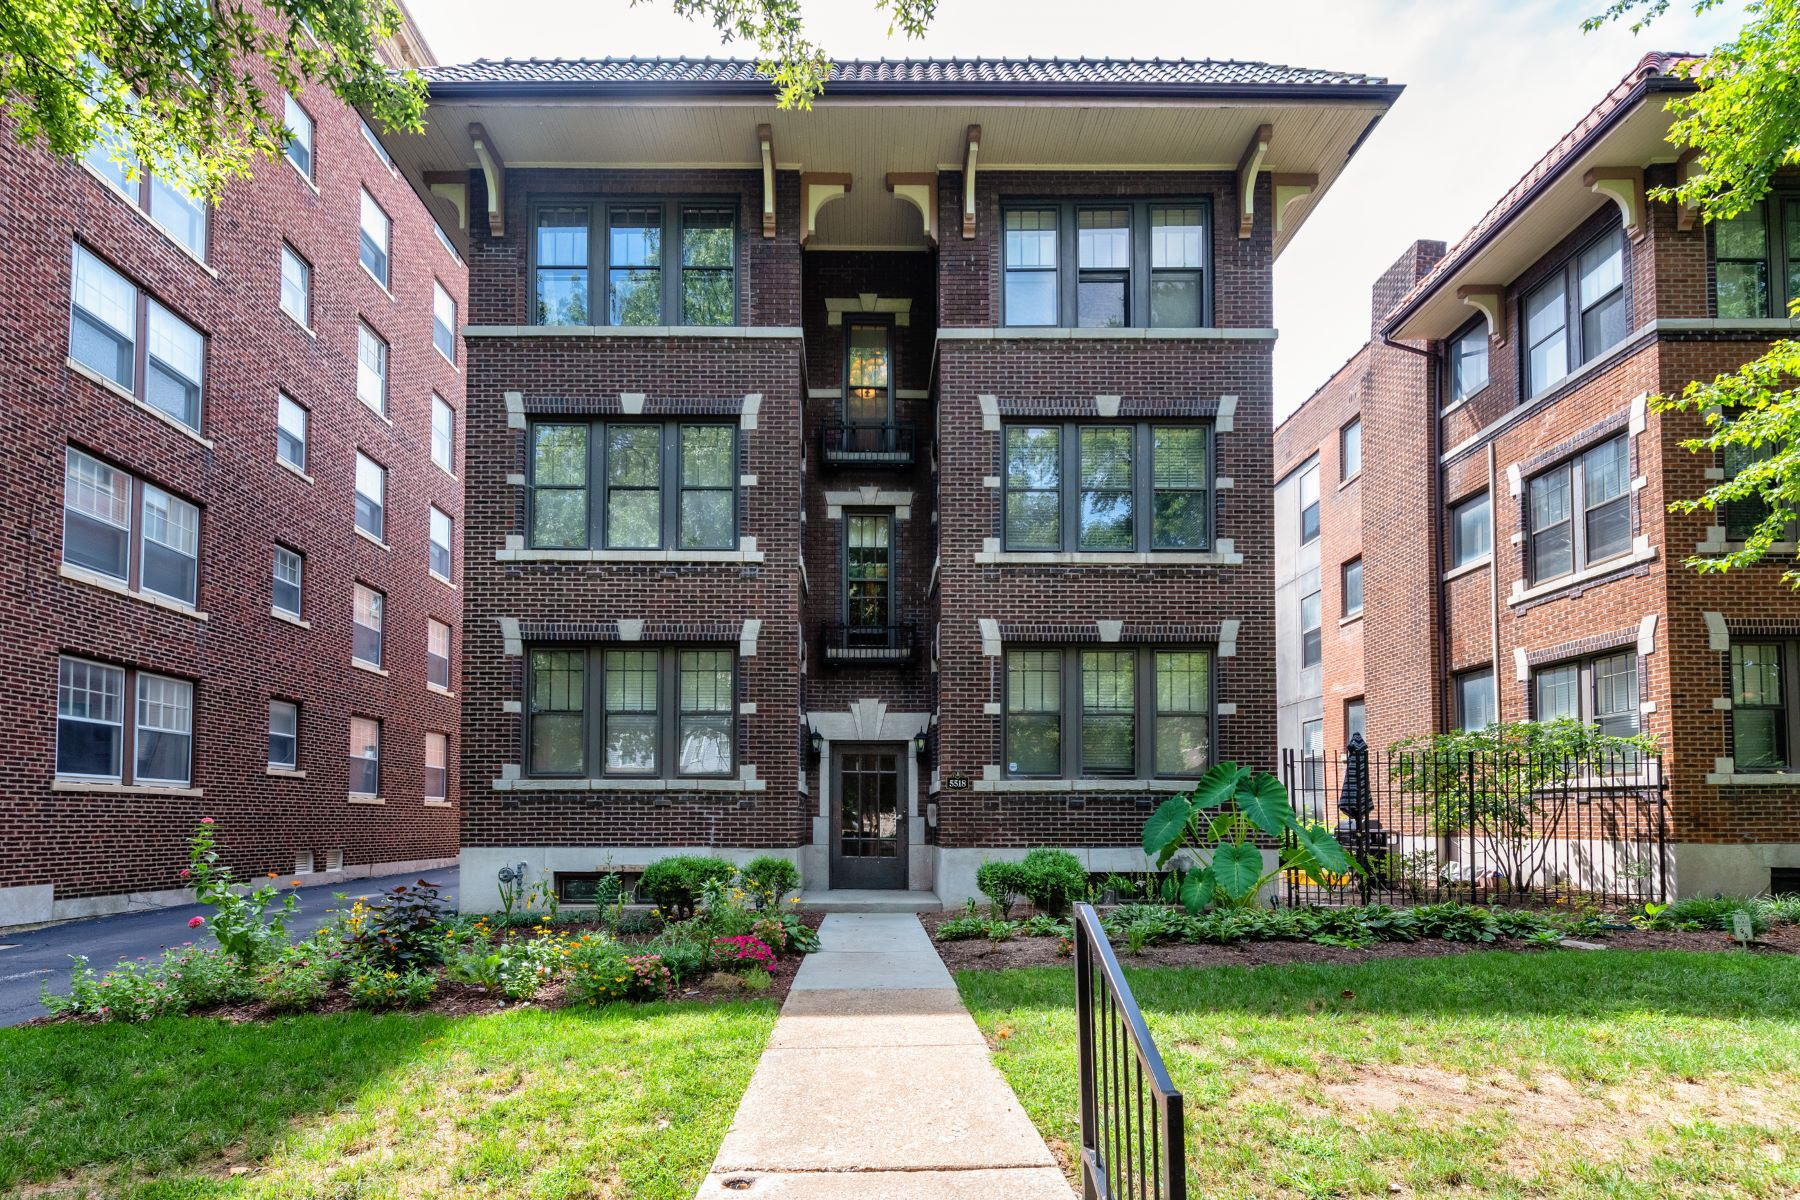 Property for Sale at DeBaliviere Place Condo 5518 Waterman Boulevard #31 St. Louis, Missouri 63112 United States